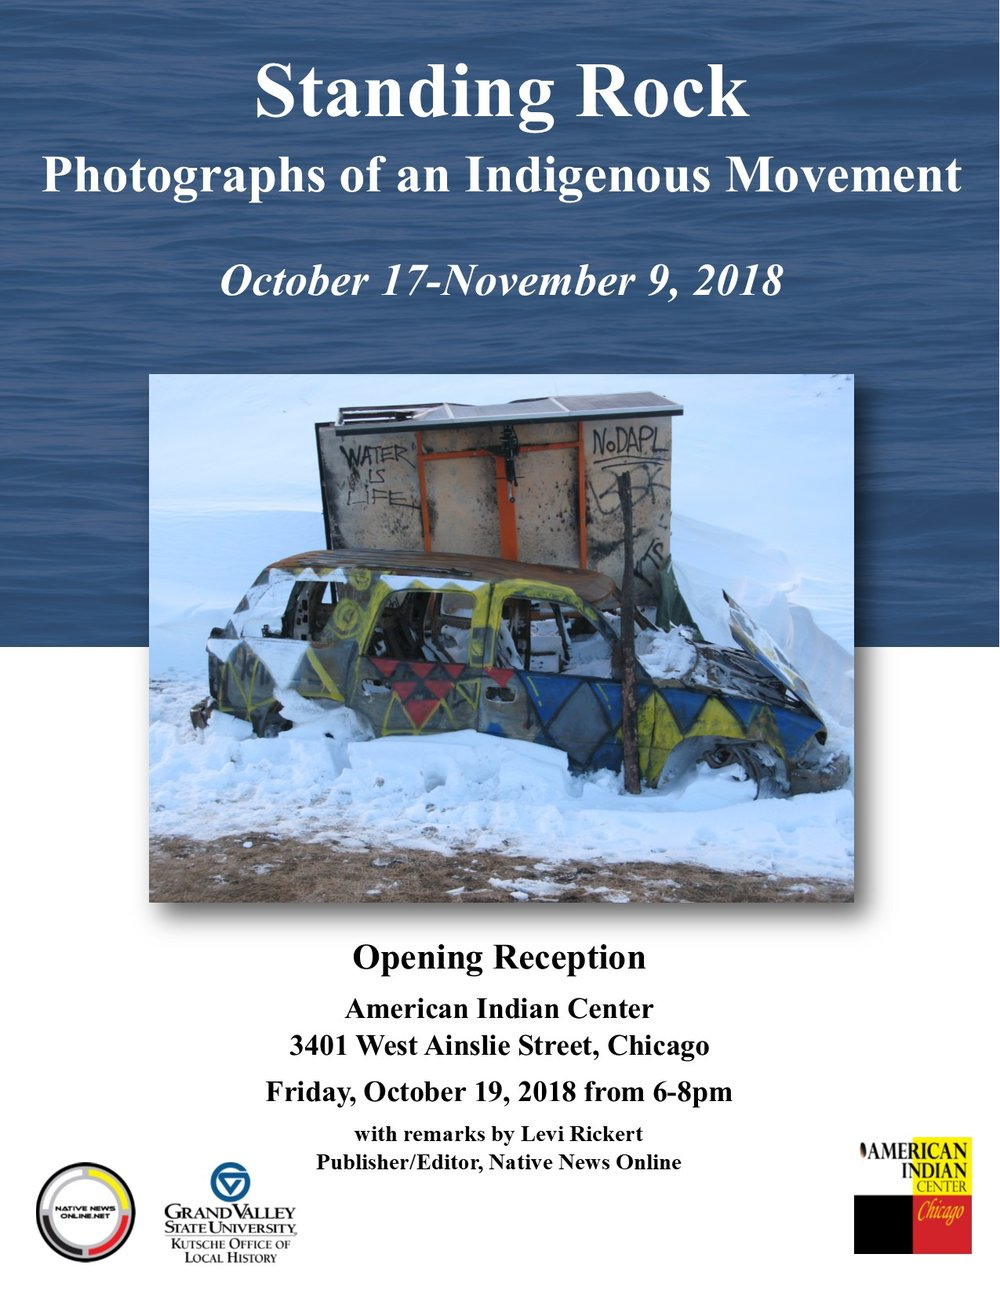 Standing Rock Exhibit_Oct 2018.jpg